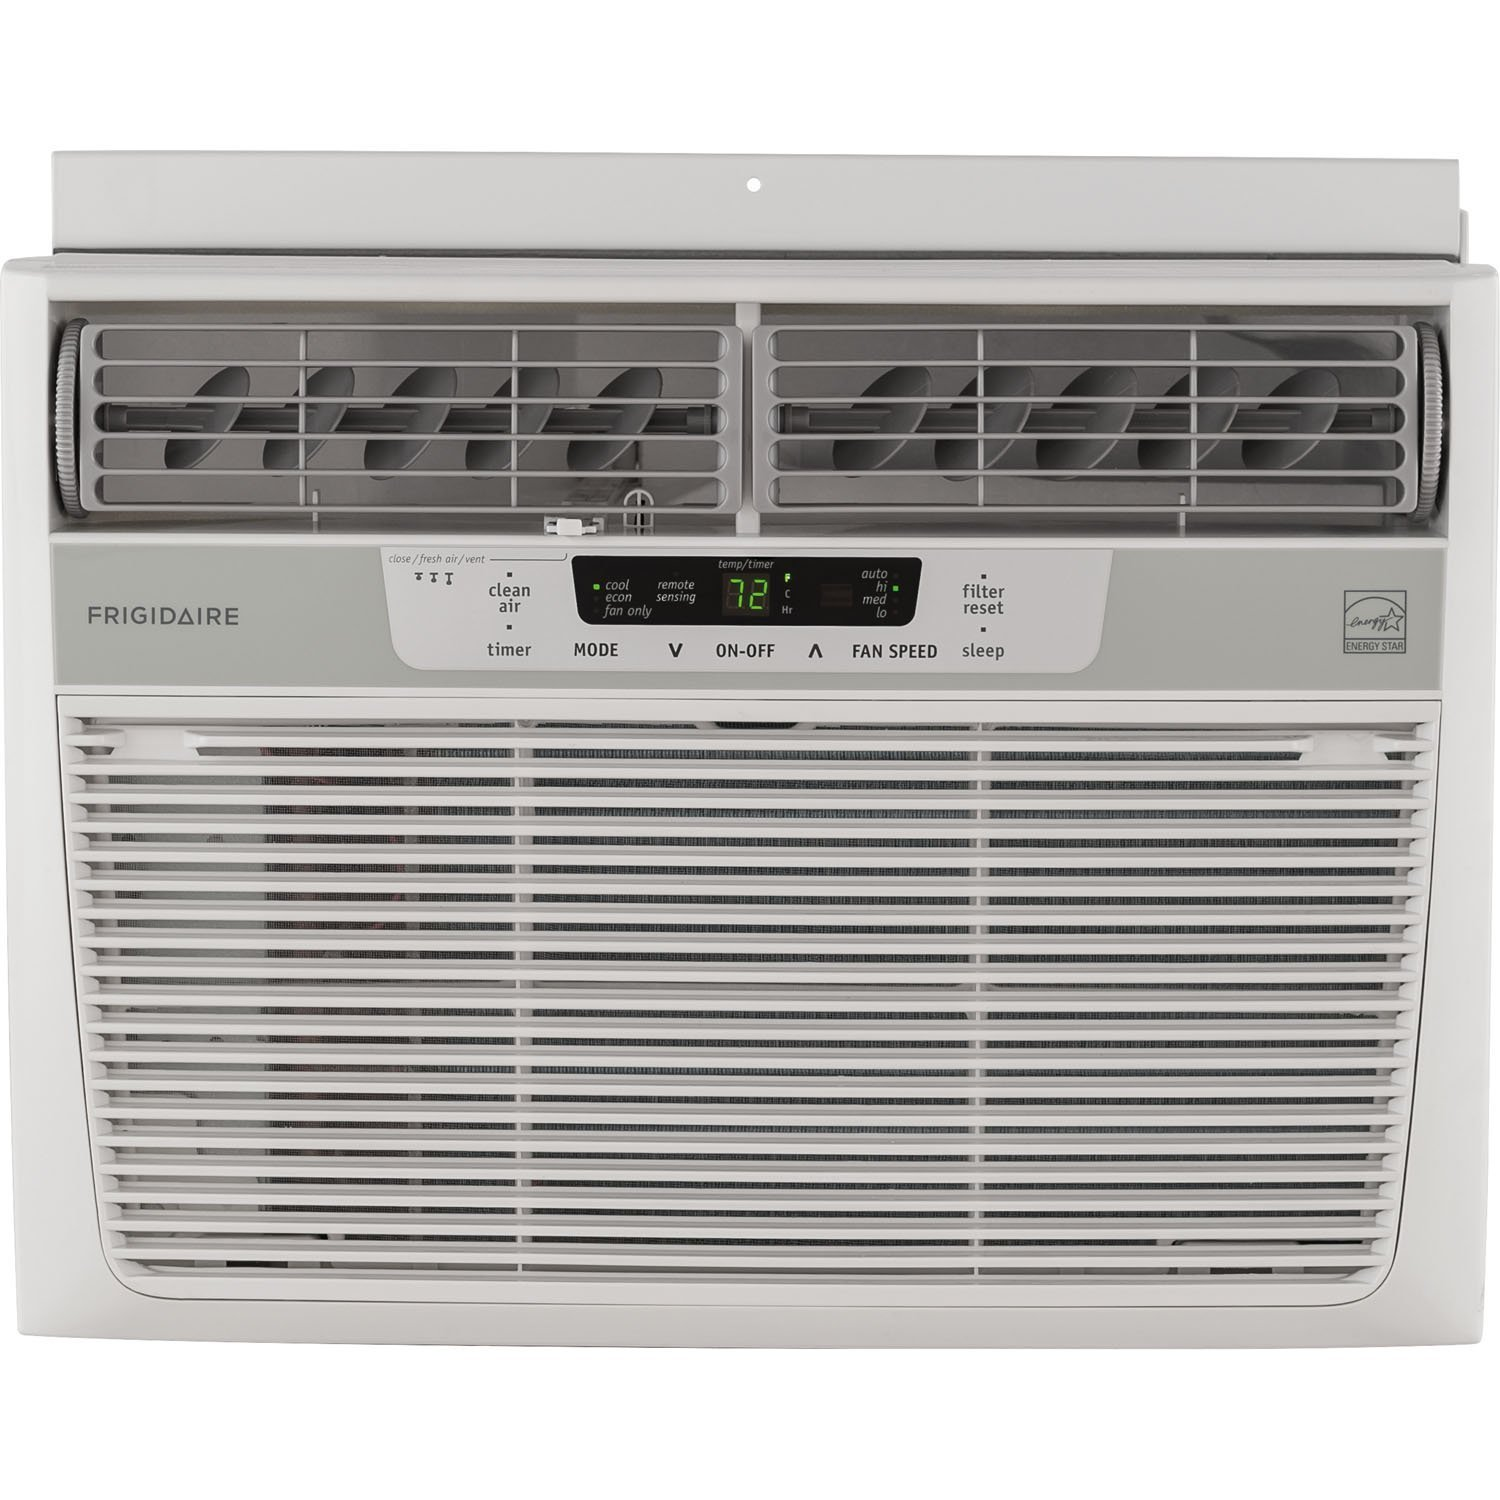 Frigidaire FFRE1233S1 12,000 BTU Window Air Conditioner